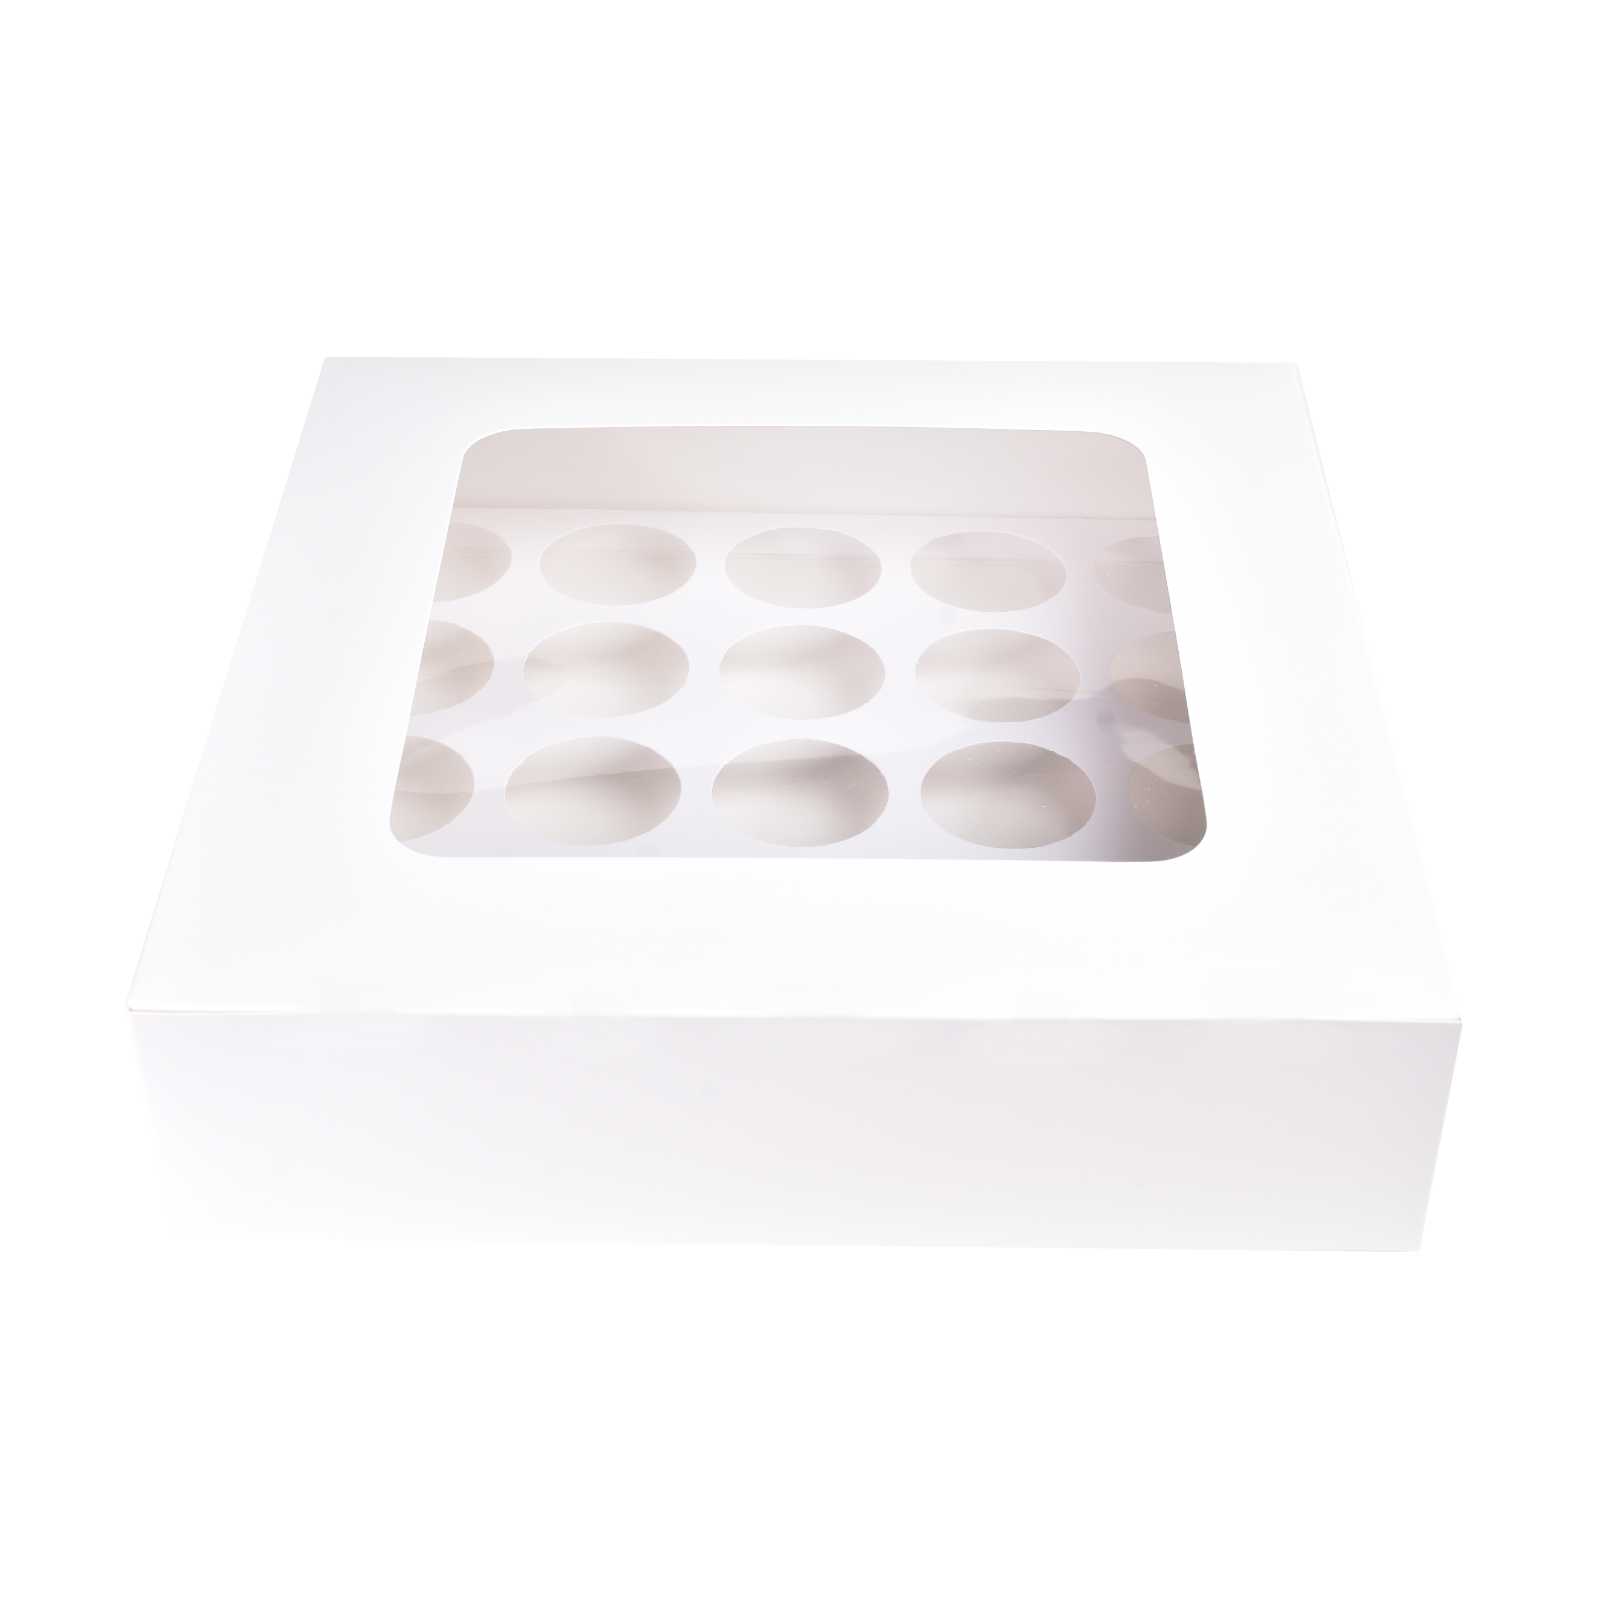 25h cup cake box white 2.png